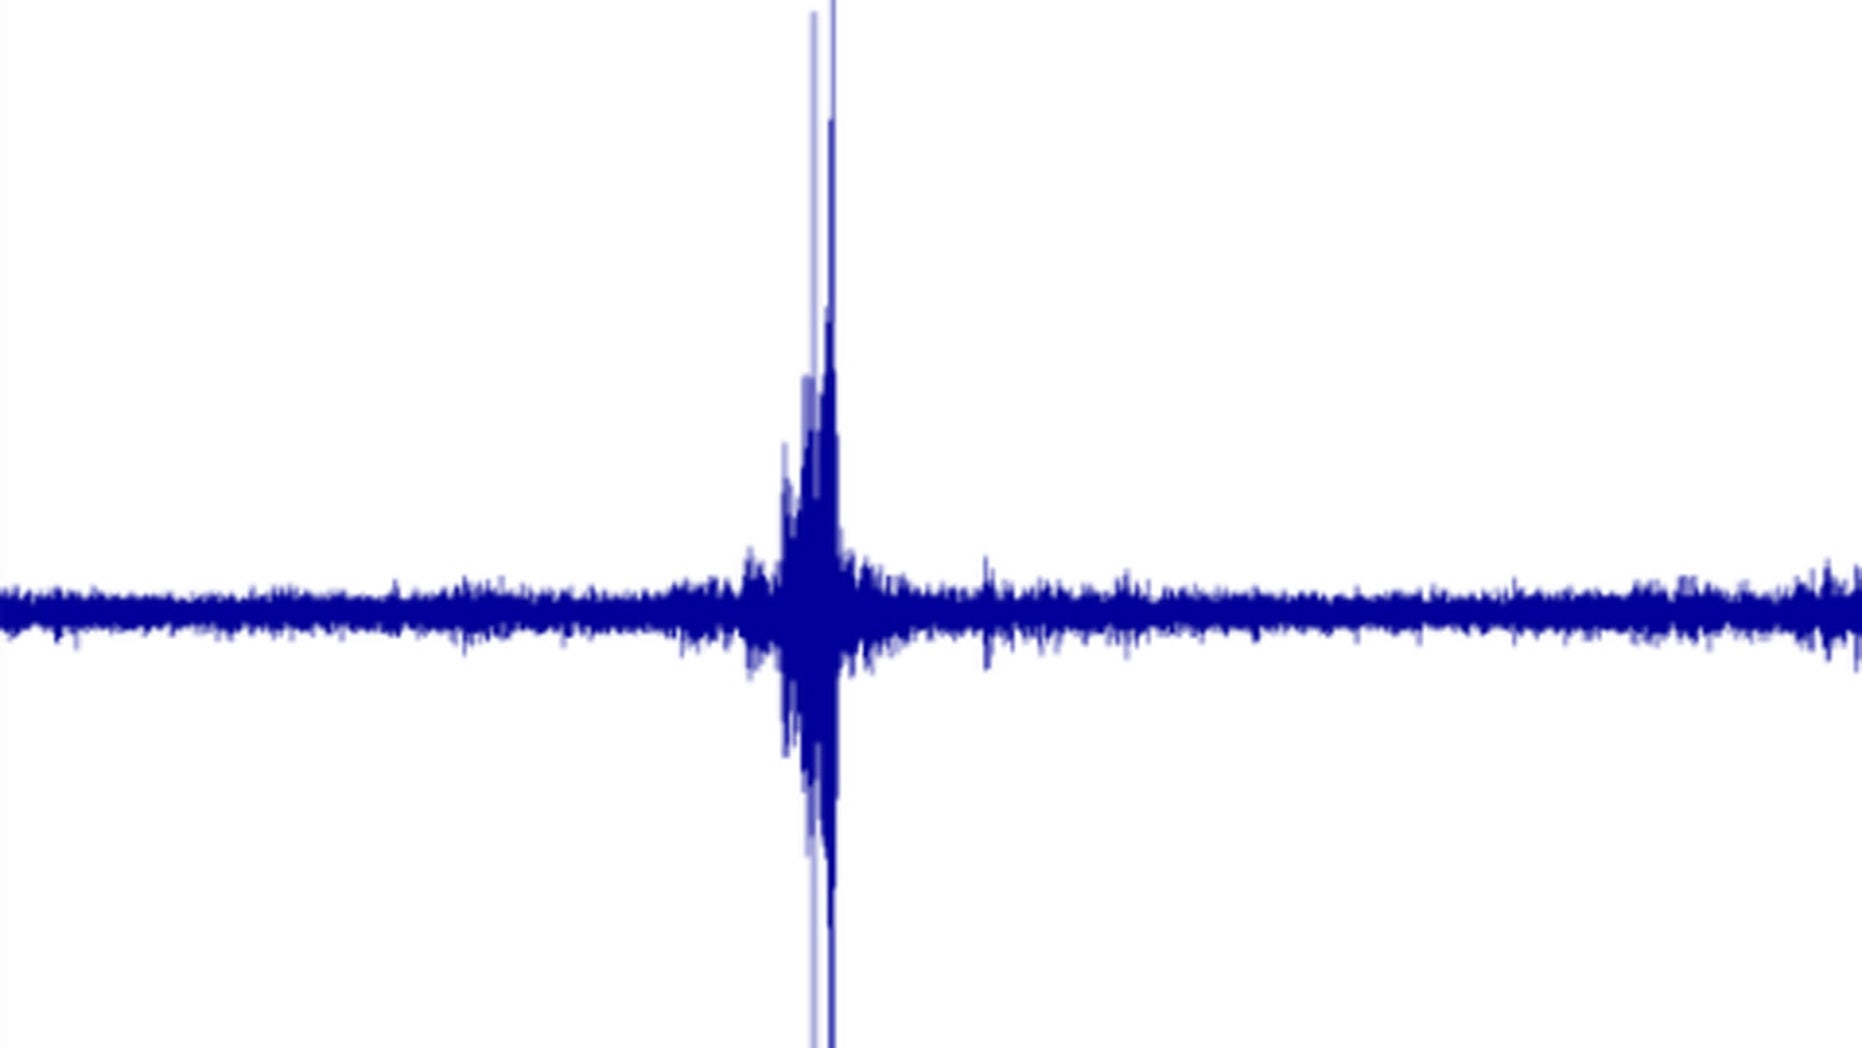 This sound graph from the U.S. Geological Survey near Centreville, Ala.